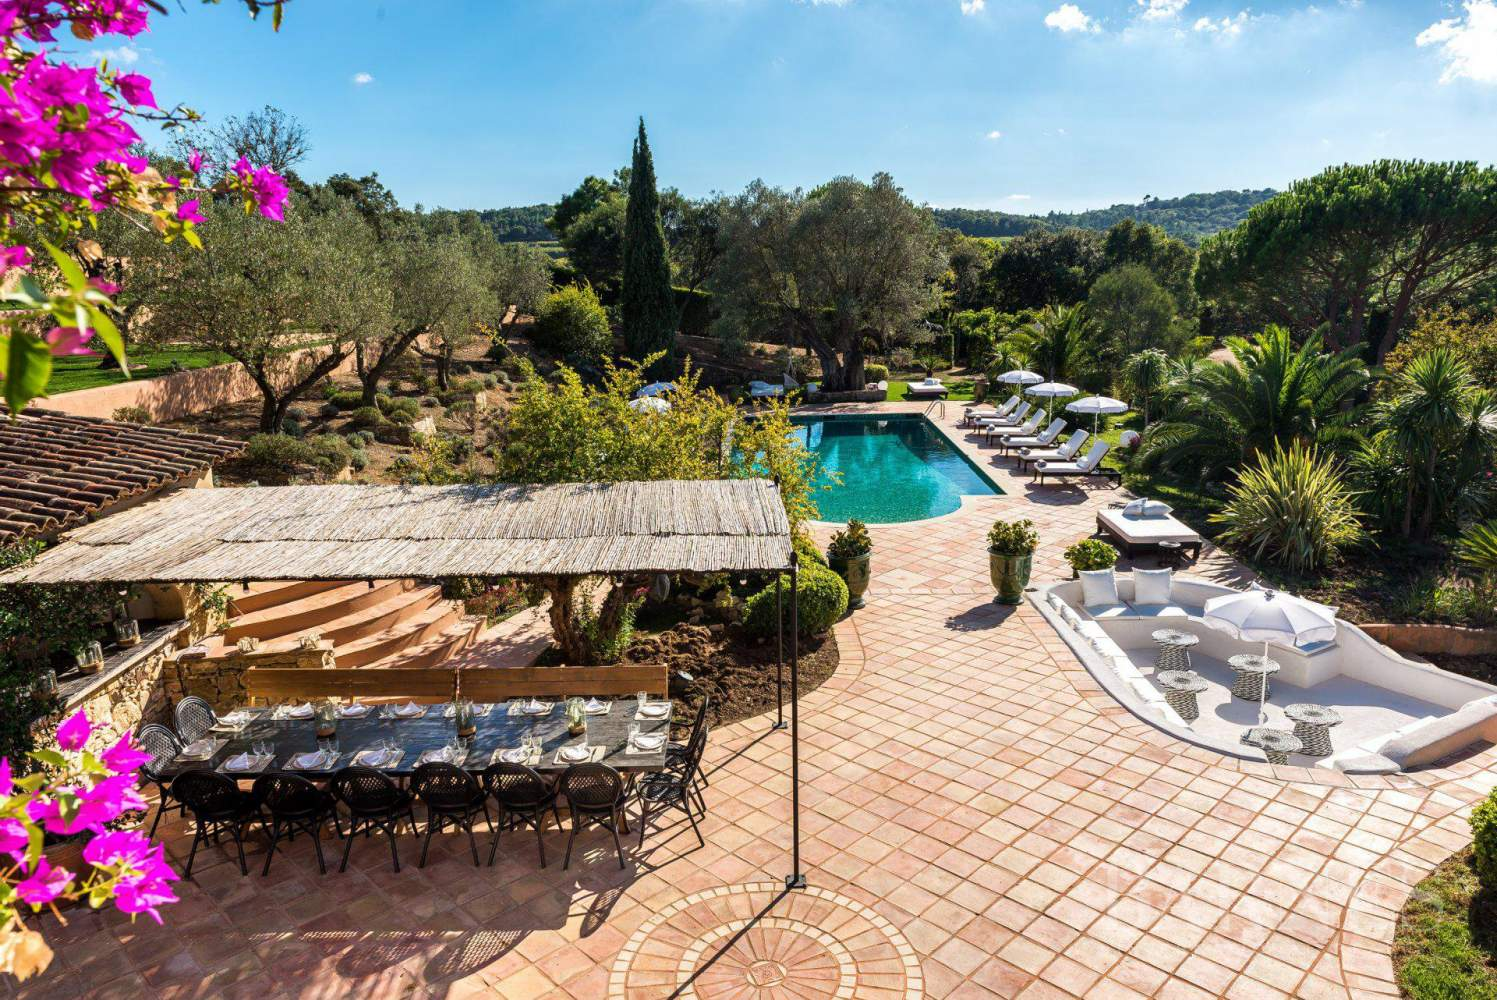 GOLFE DE SAINT-TROPEZ - LA CROIX VALMER - Beautiful Provencal house - 6 bedrooms - Pool picture 1